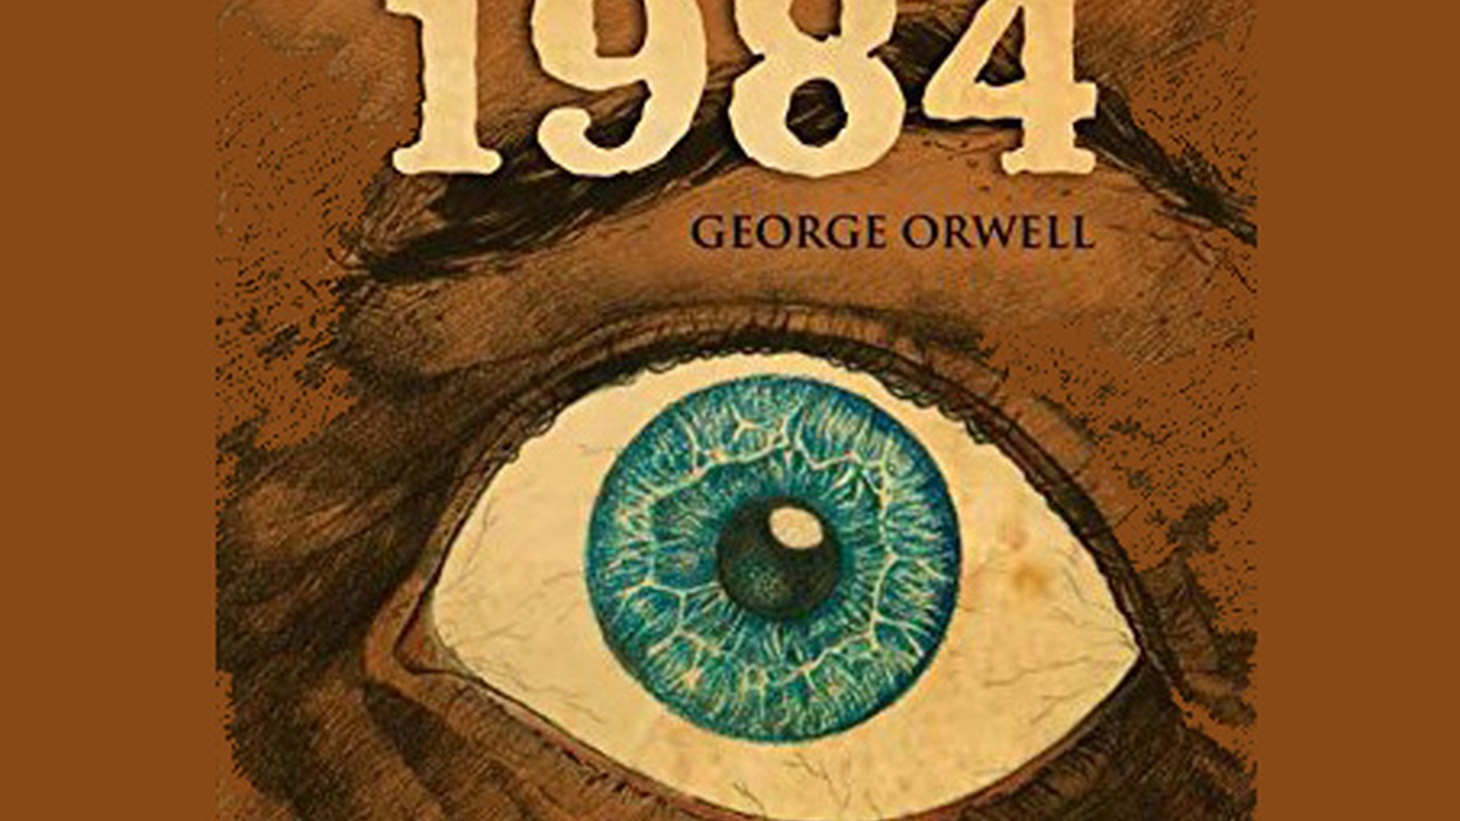 1984 today